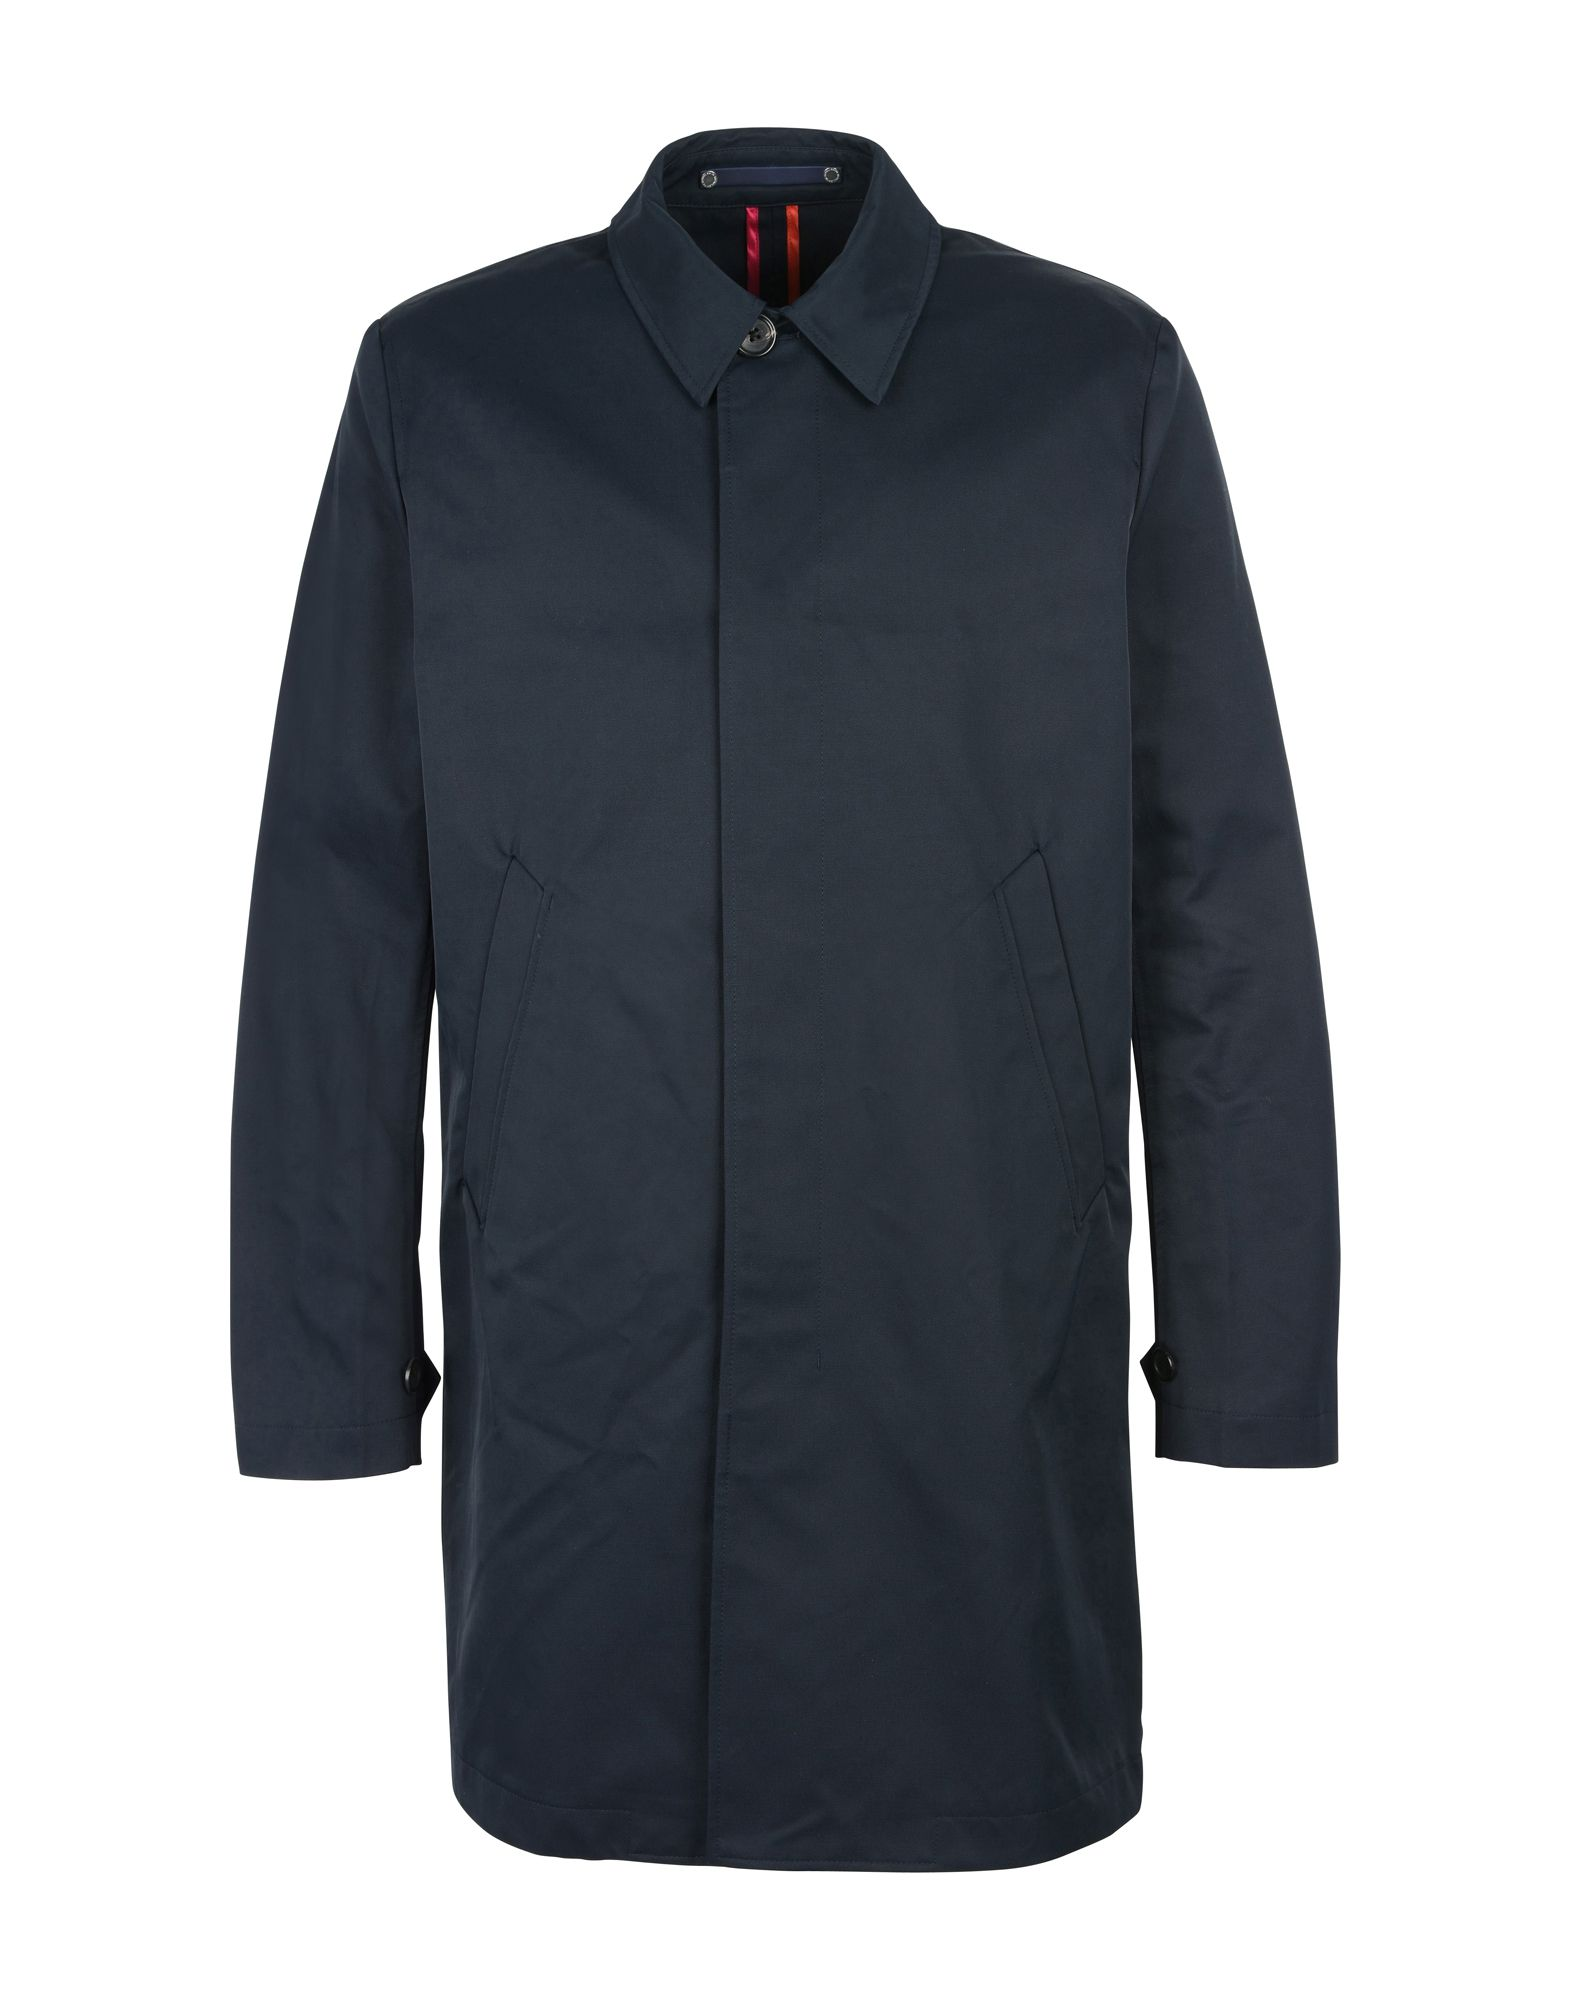 85b0237e4220c Ps Paul Smith Mens Unlined Mac - Full-Length Jacket - Men Ps Paul Smith  Full-Length Jackets online on YOOX Finland - 41786600UD